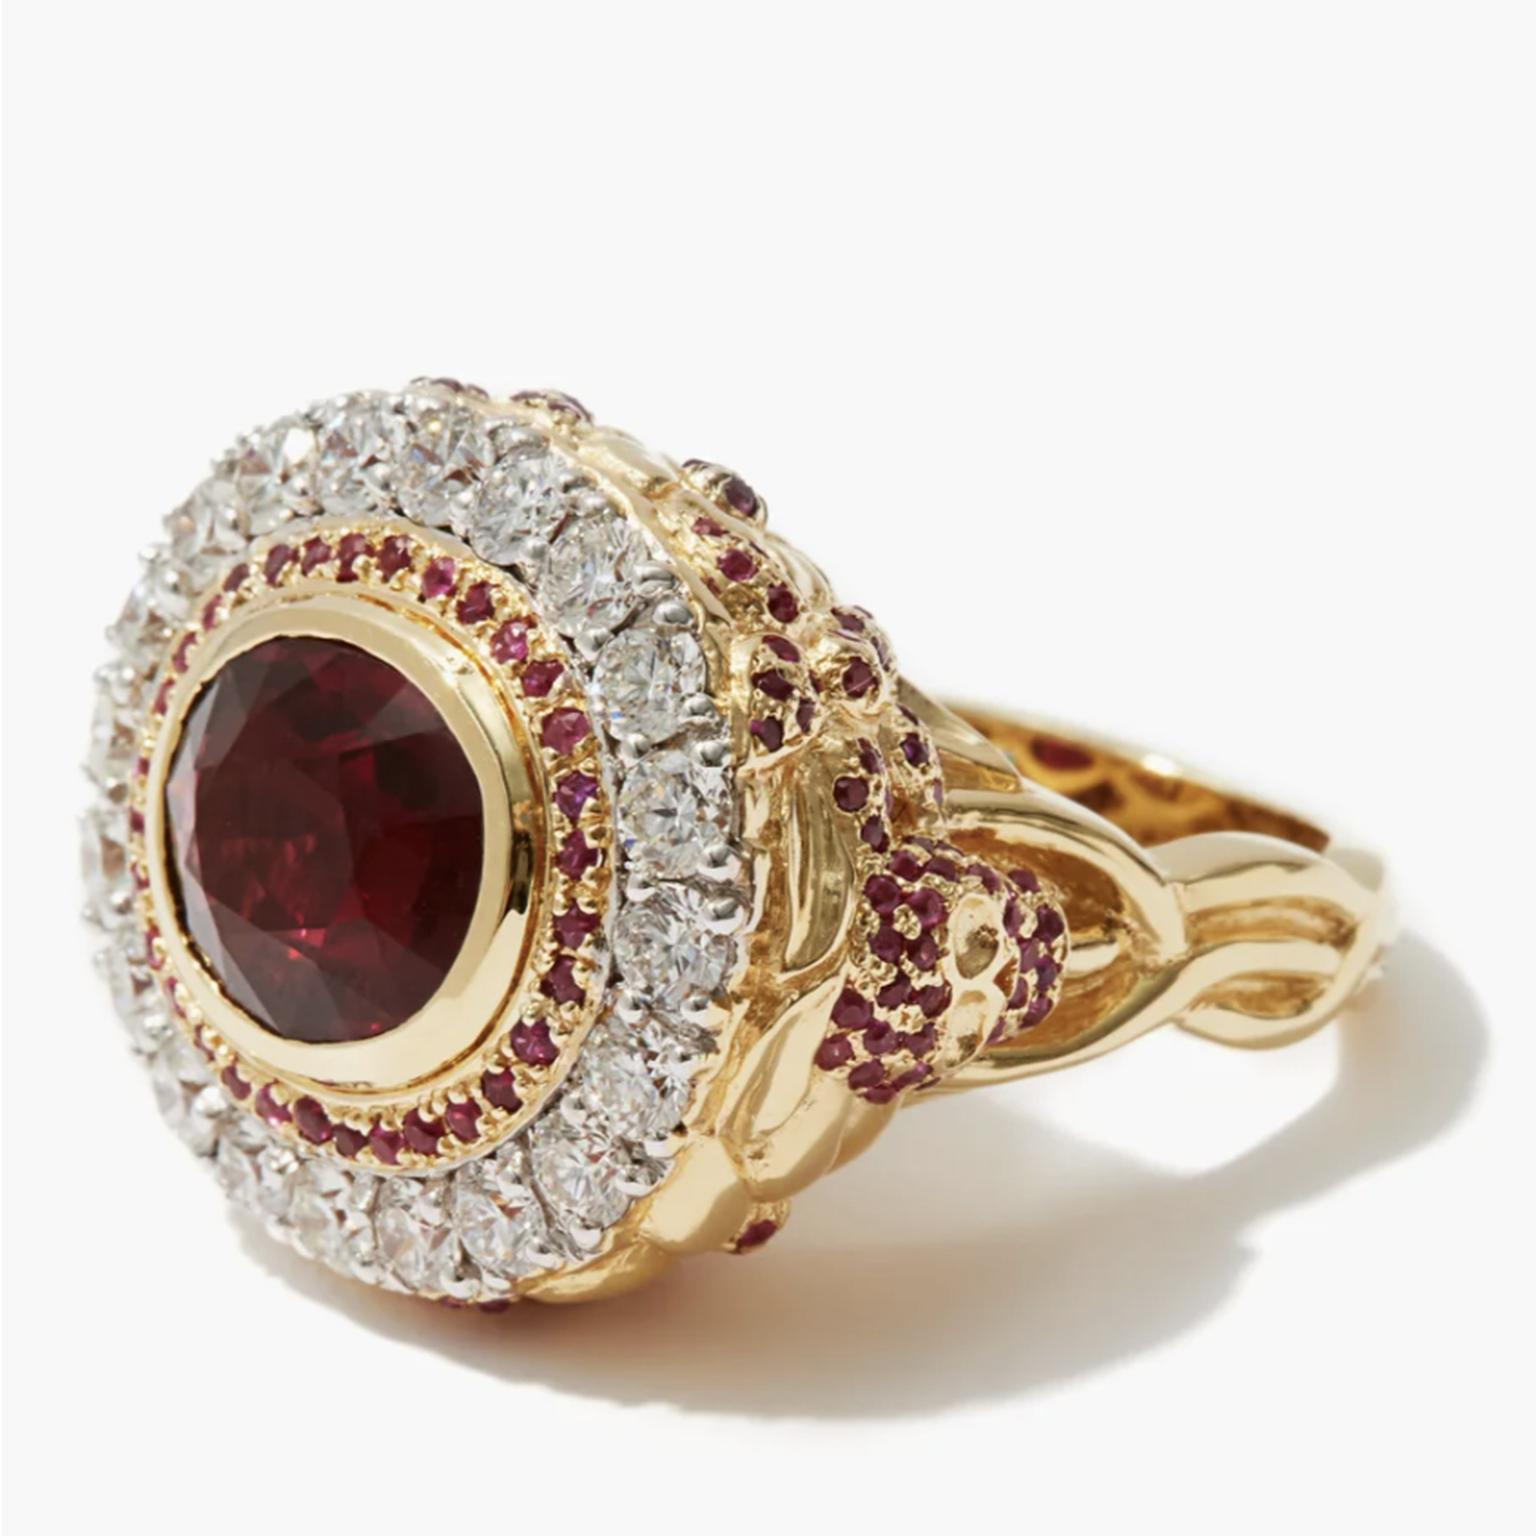 JADE JAGGER Diamond, ruby & 18kt gold cocktail ring  £7,500